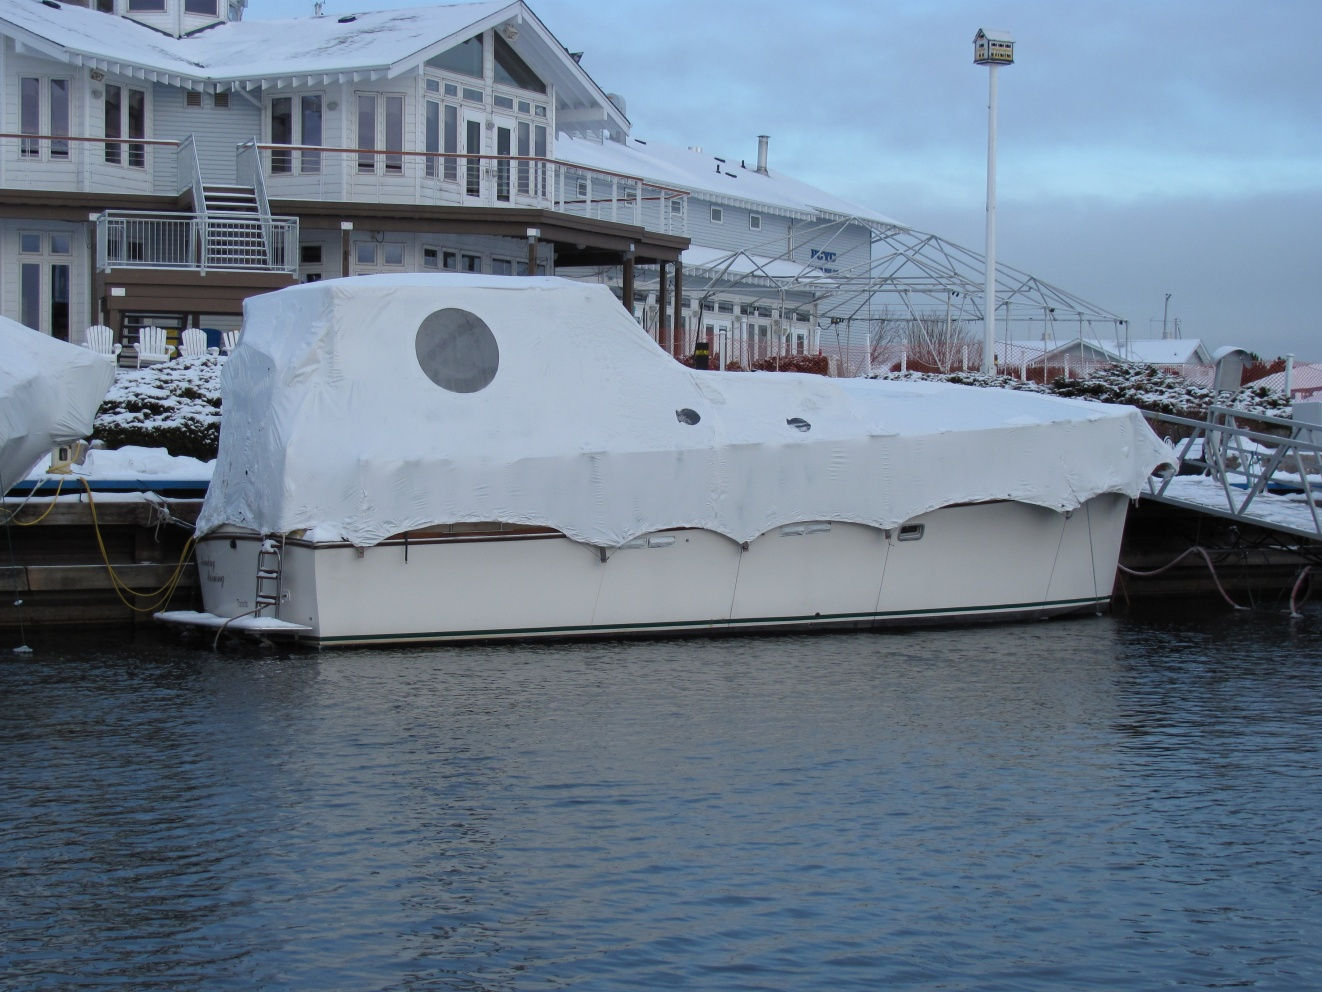 Click image for larger version  Name:Snow boat.jpg Views:196 Size:412.7 KB ID:50134